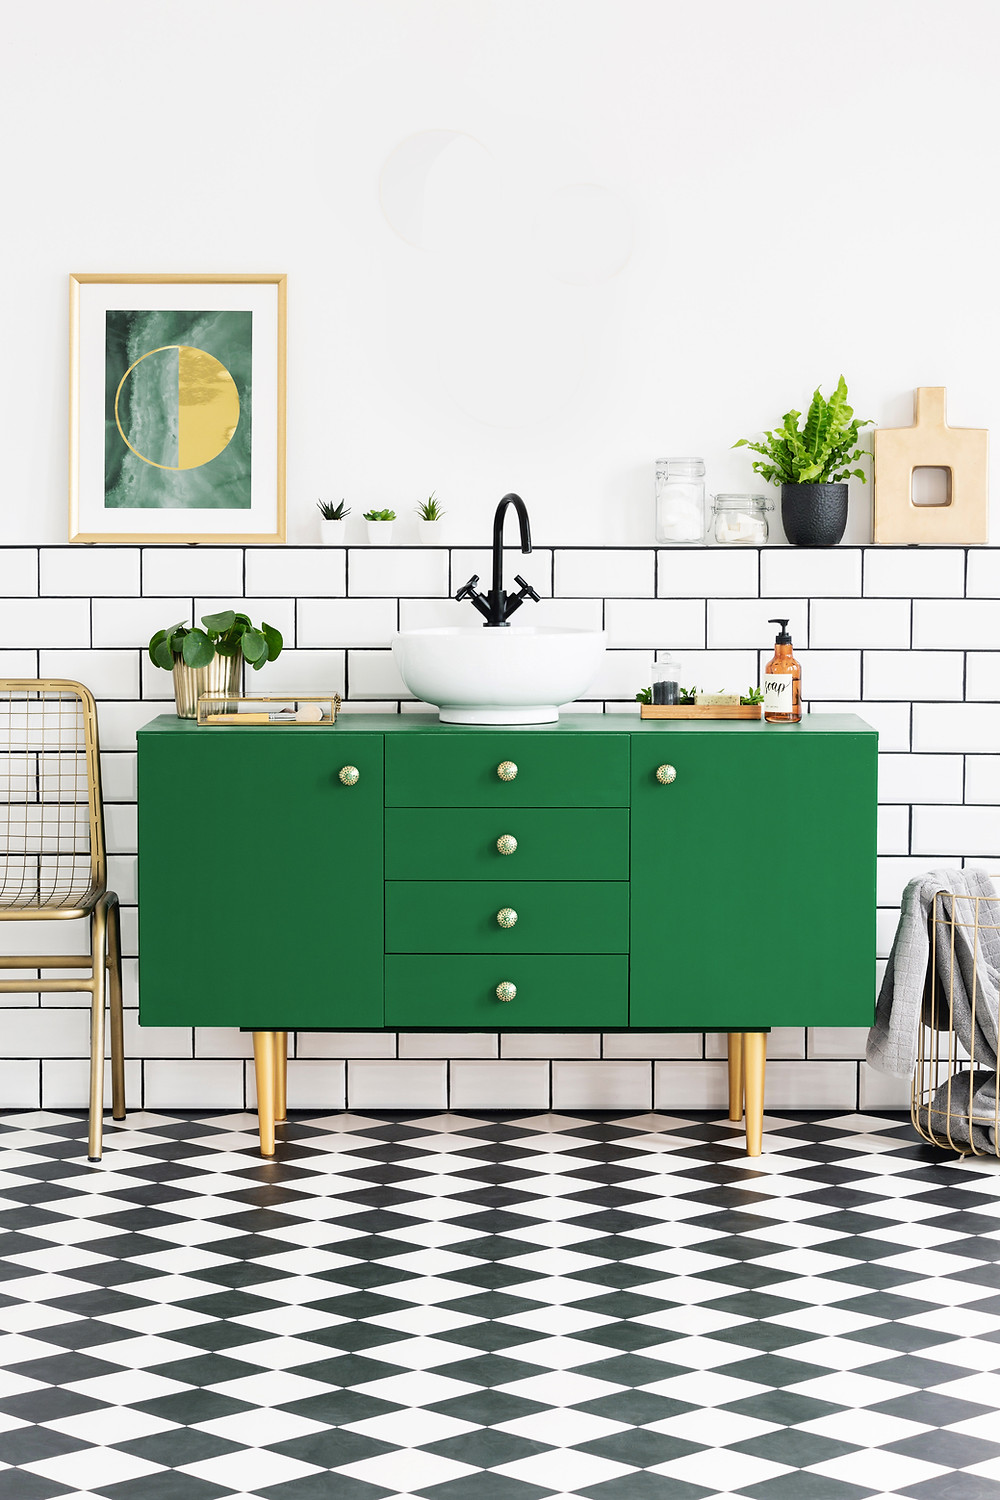 modern home with green sink and modern art and gold accessories